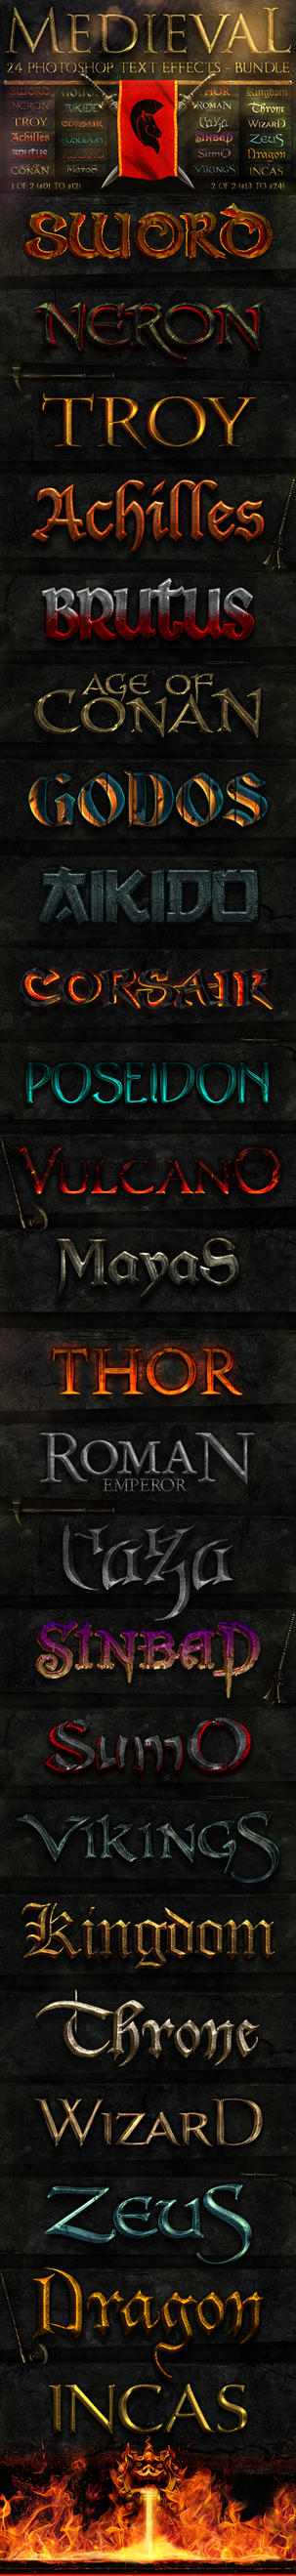 Medieval Photoshop Text Effects [BUNDLE] by fluctuemos